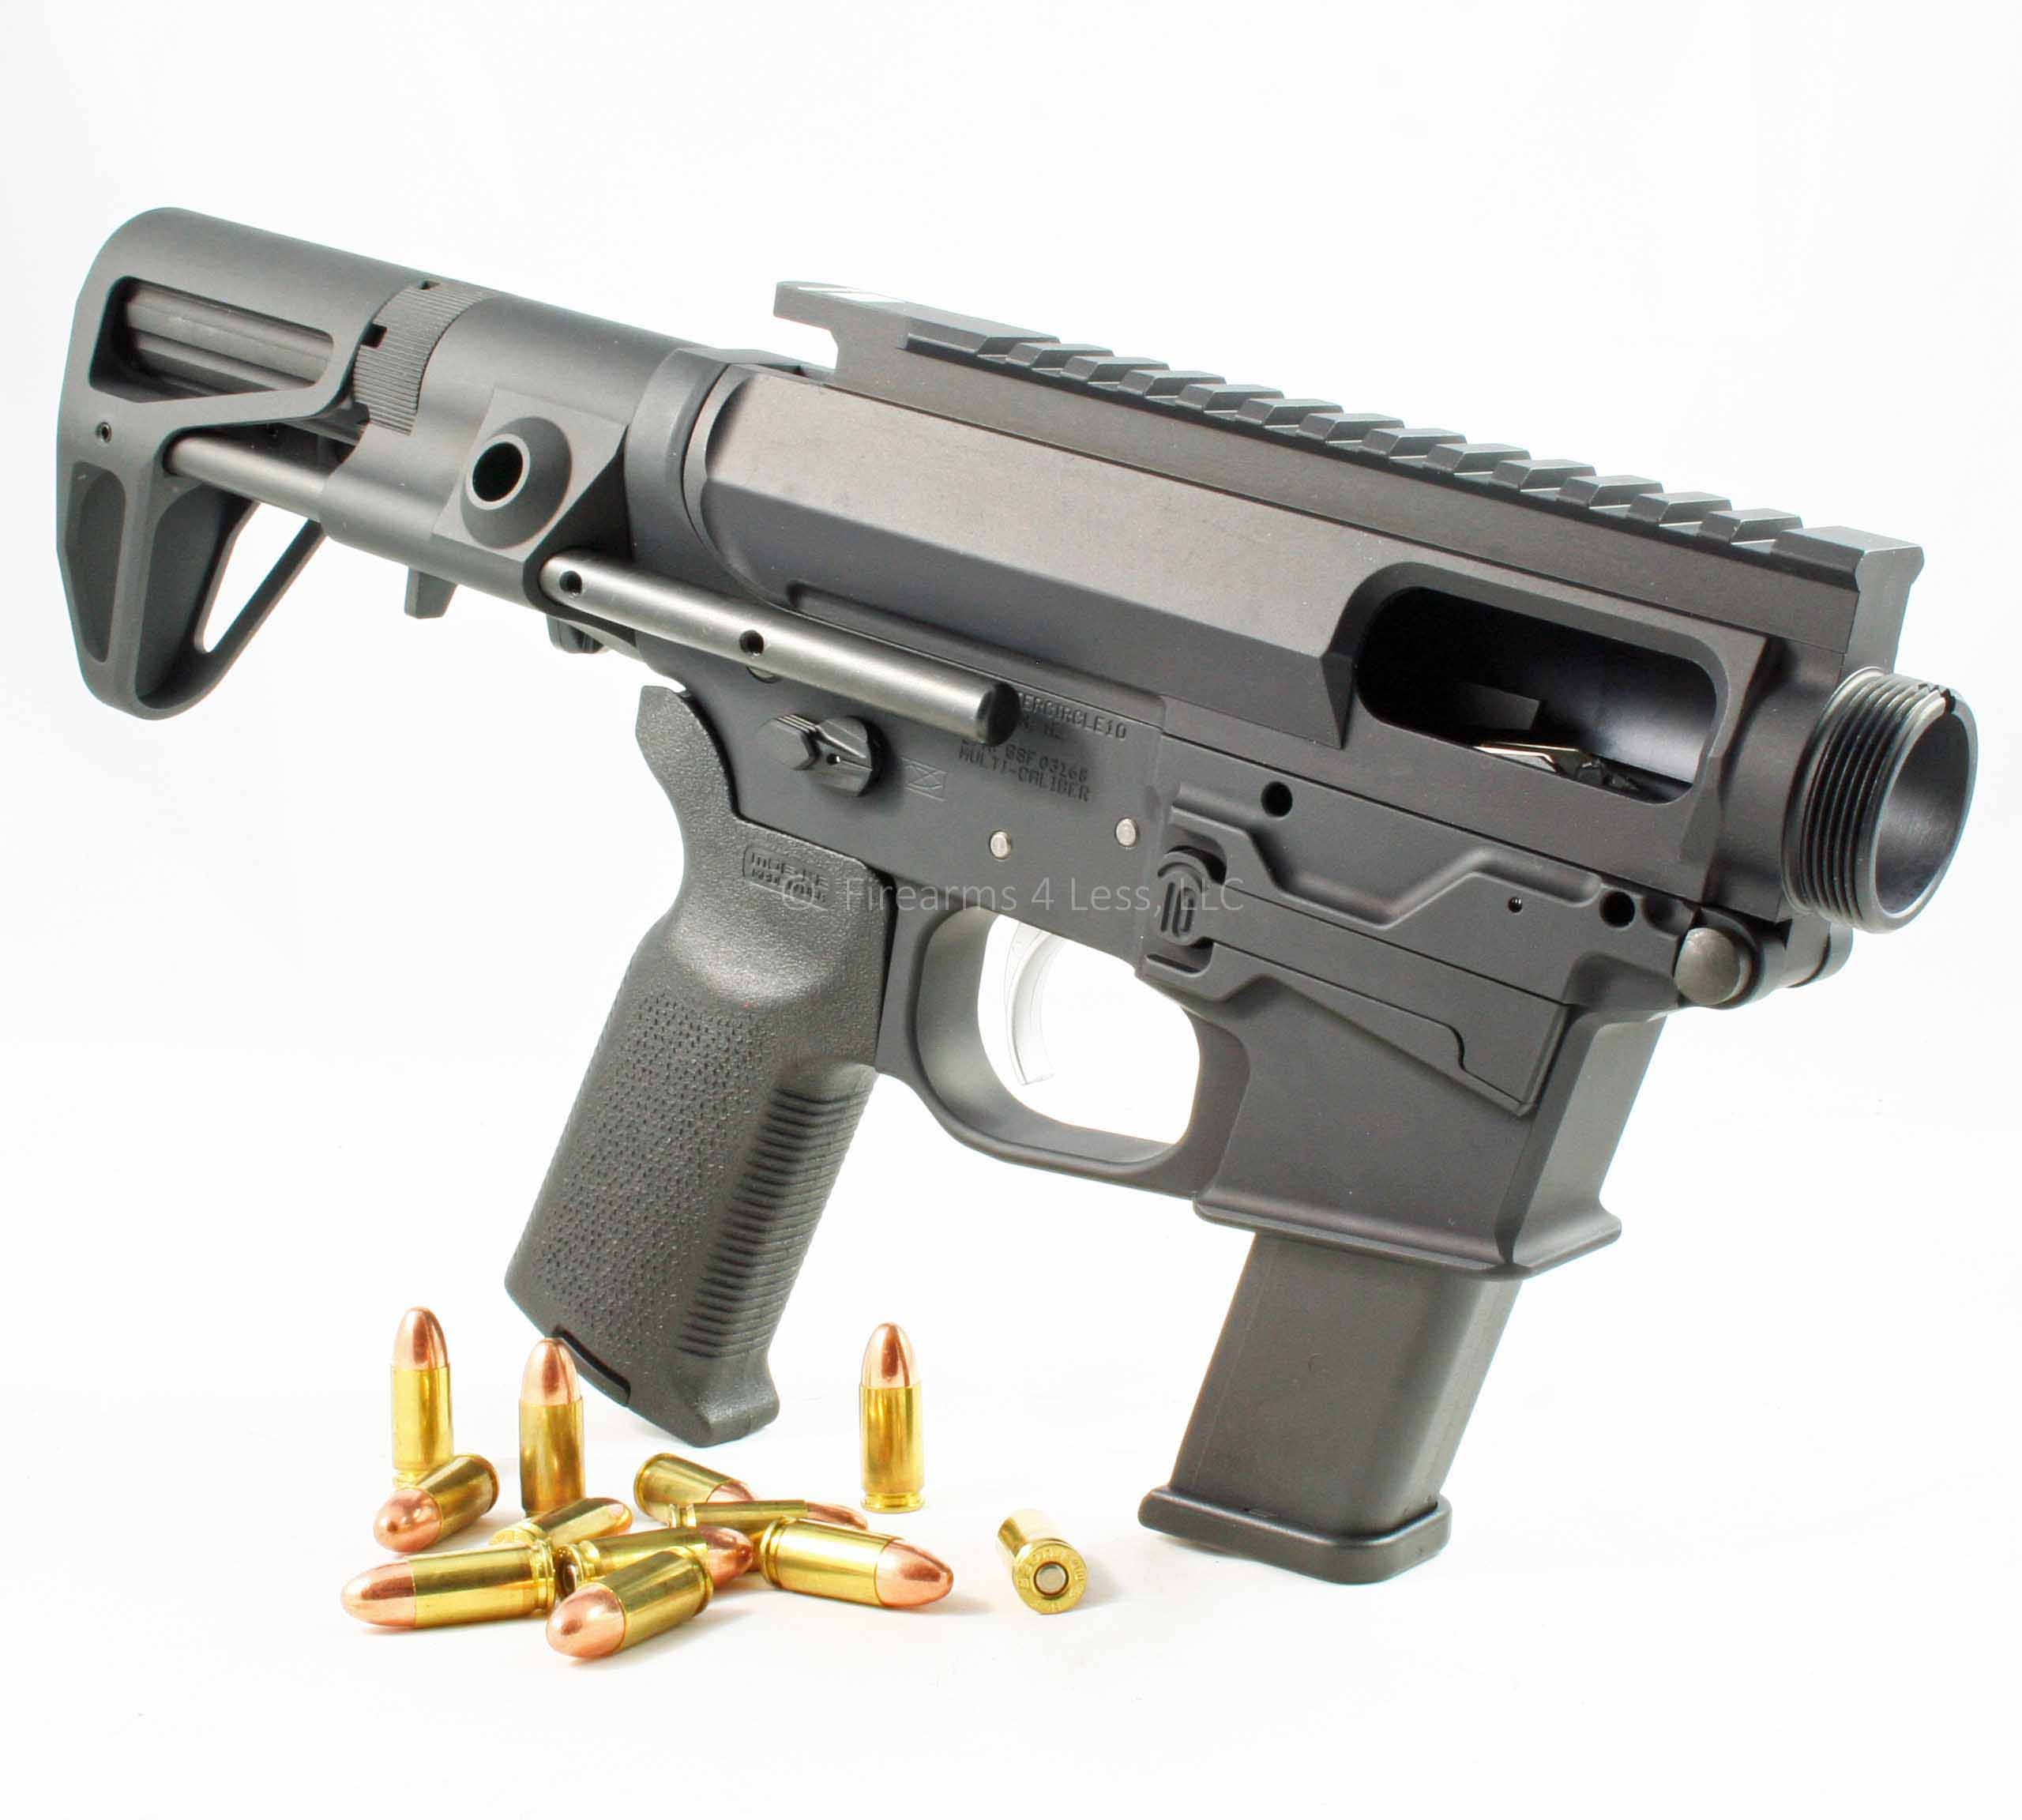 Quarter Circle 10 GSF 9mm Complete AR15 Lower/Upper w